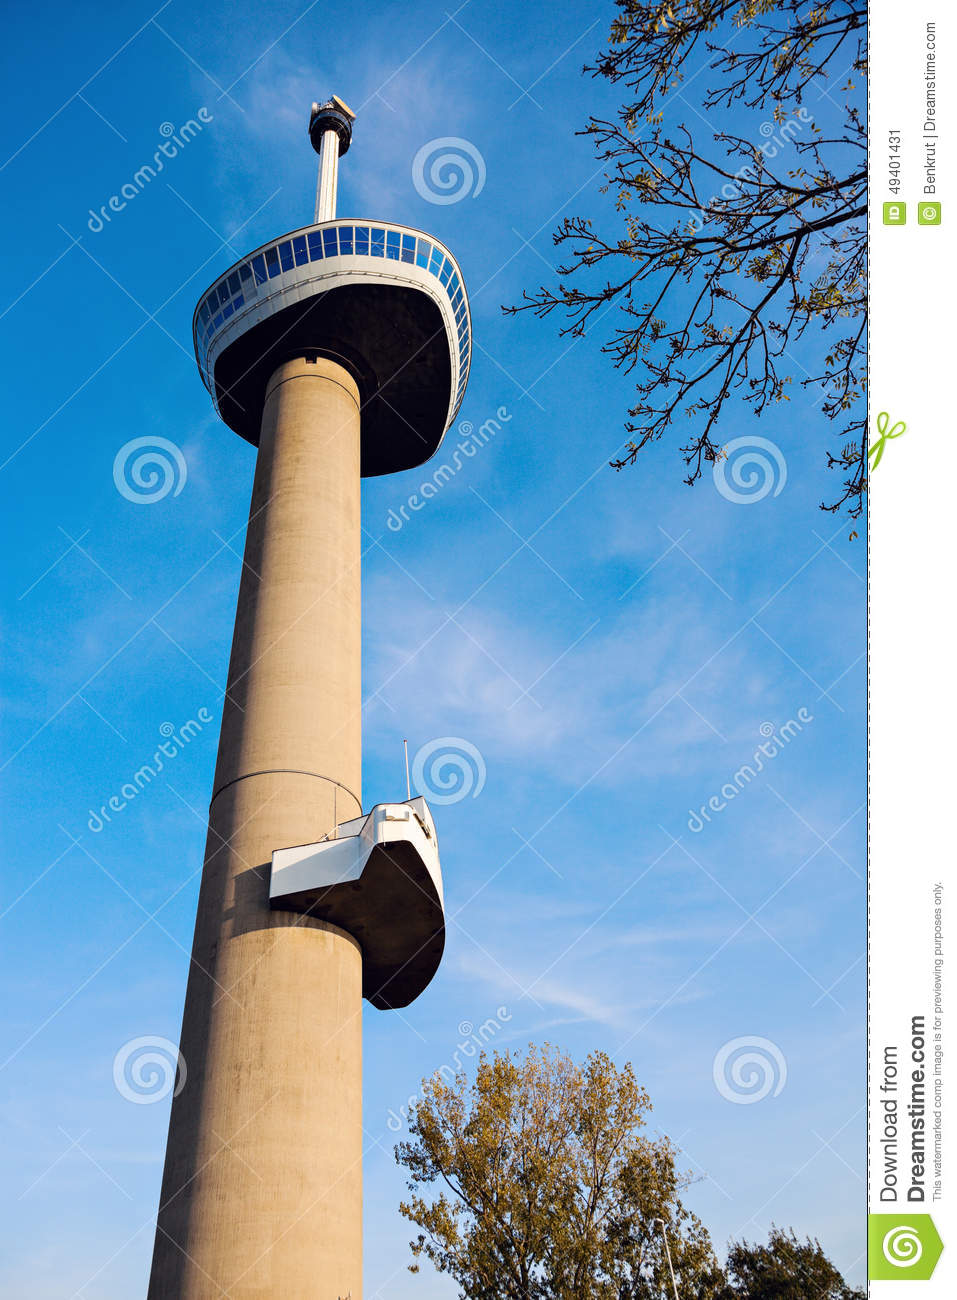 Download Euromast stockbild. Bild von downtown, rotterdam, skyline - 49401431